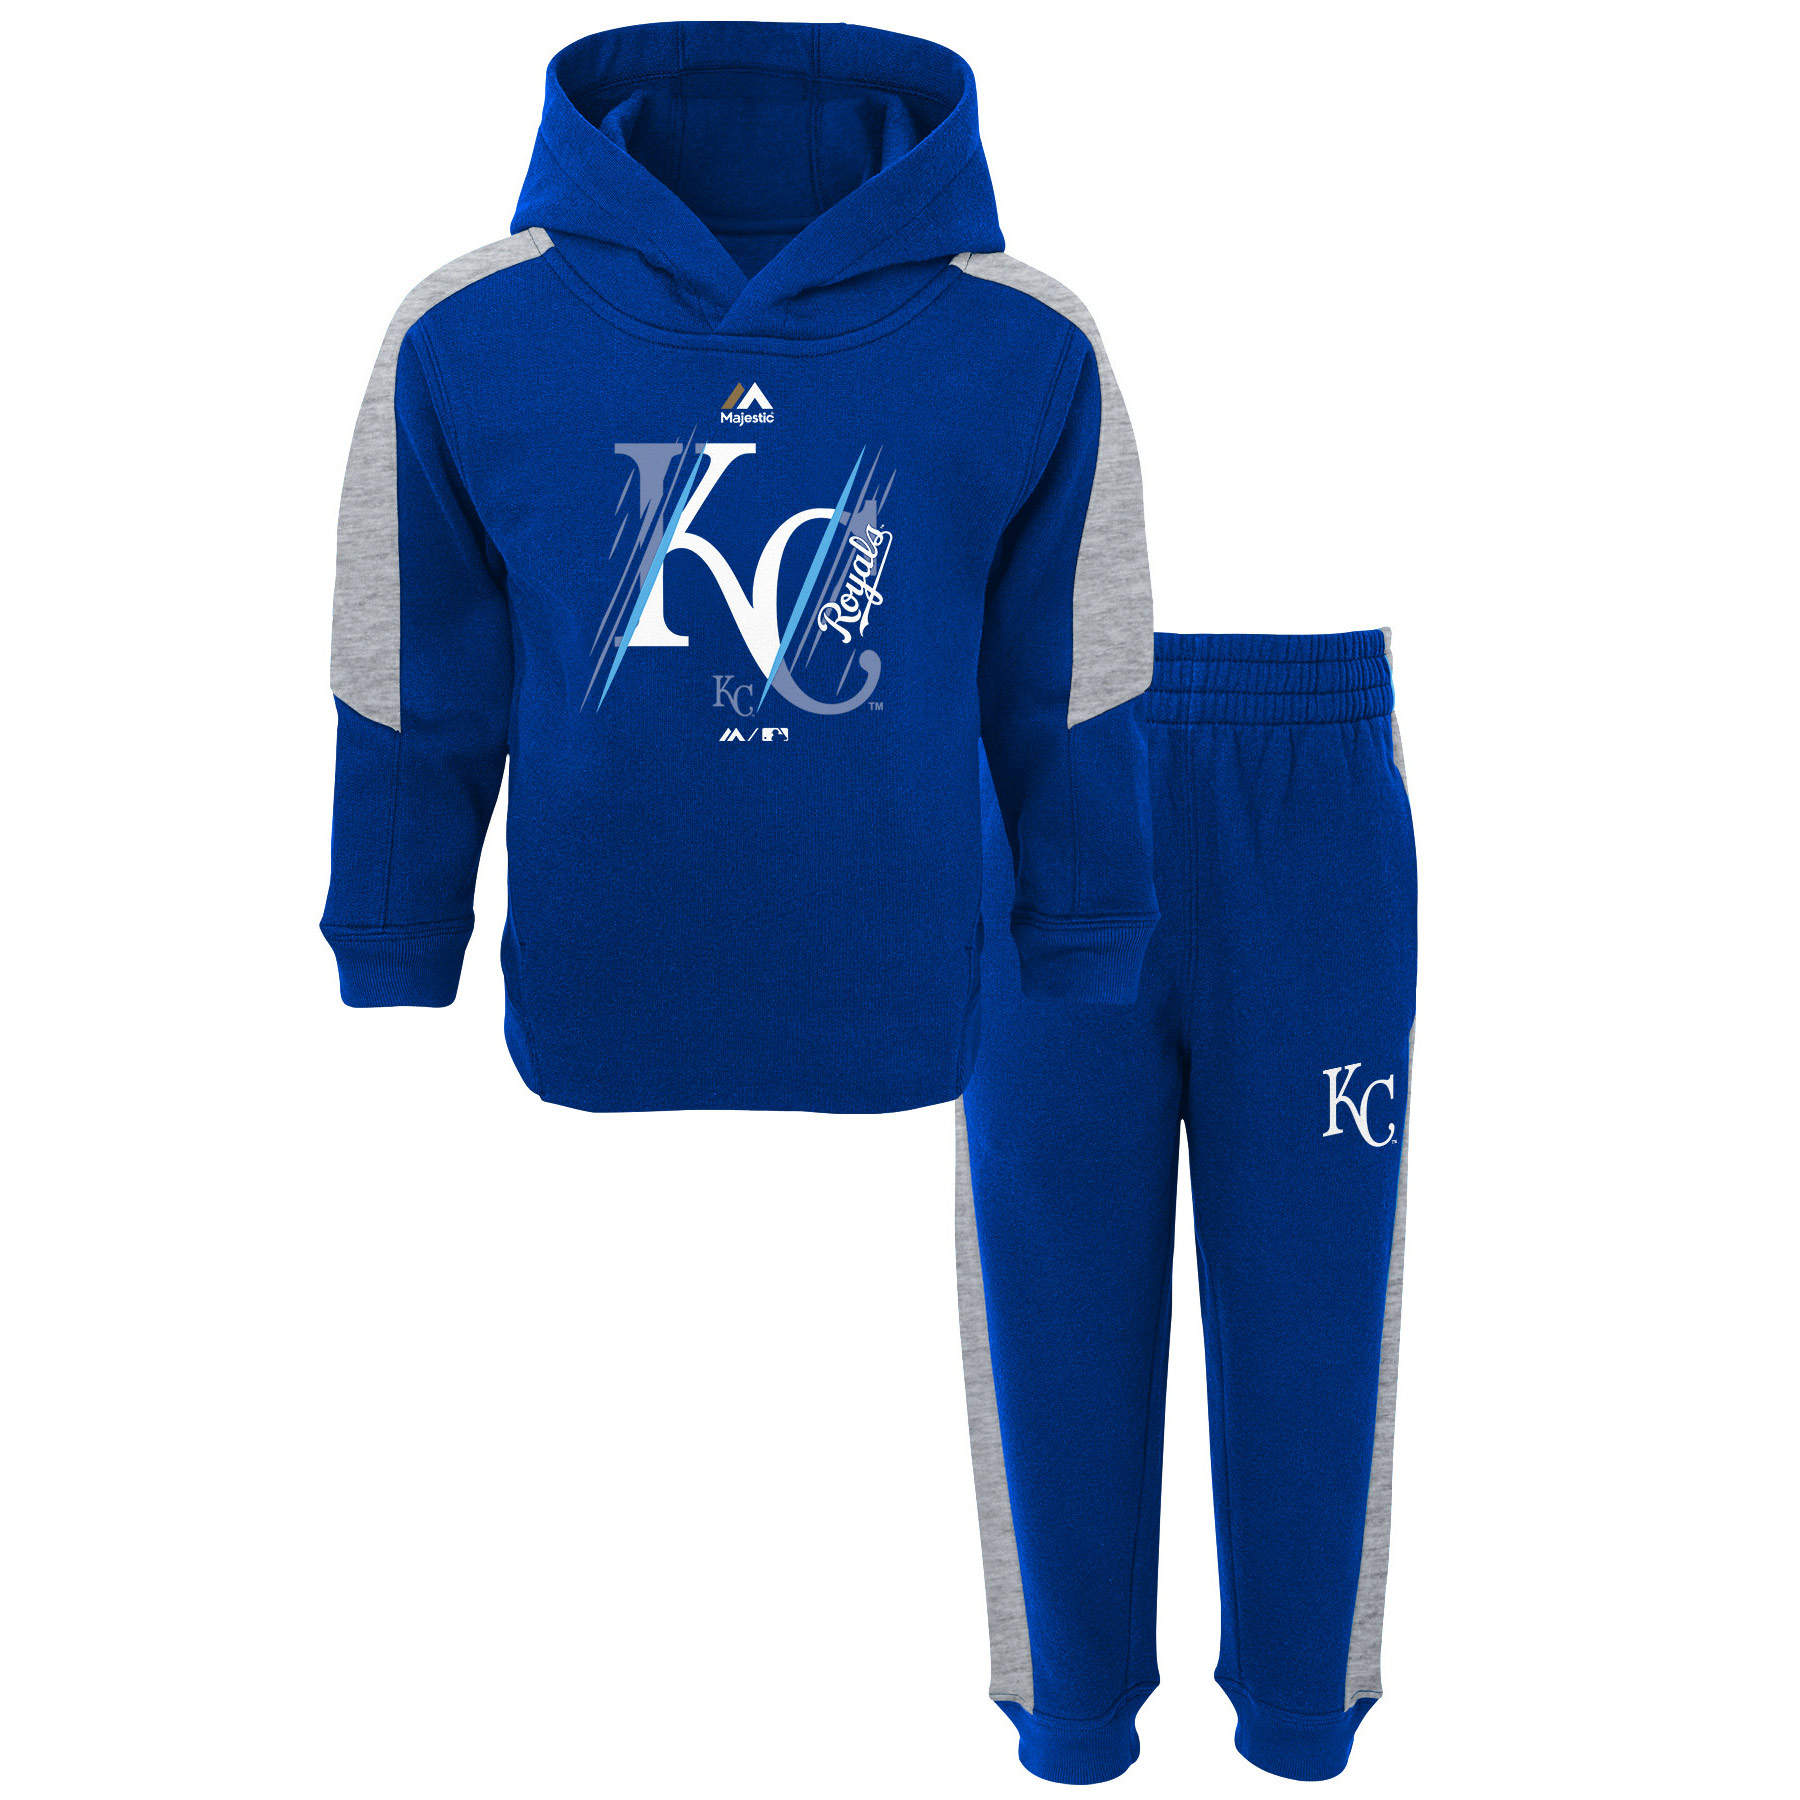 Kansas City Royals Majestic Toddler Outfielder Fleece Hoodie and Pants Set - Royal/Gray